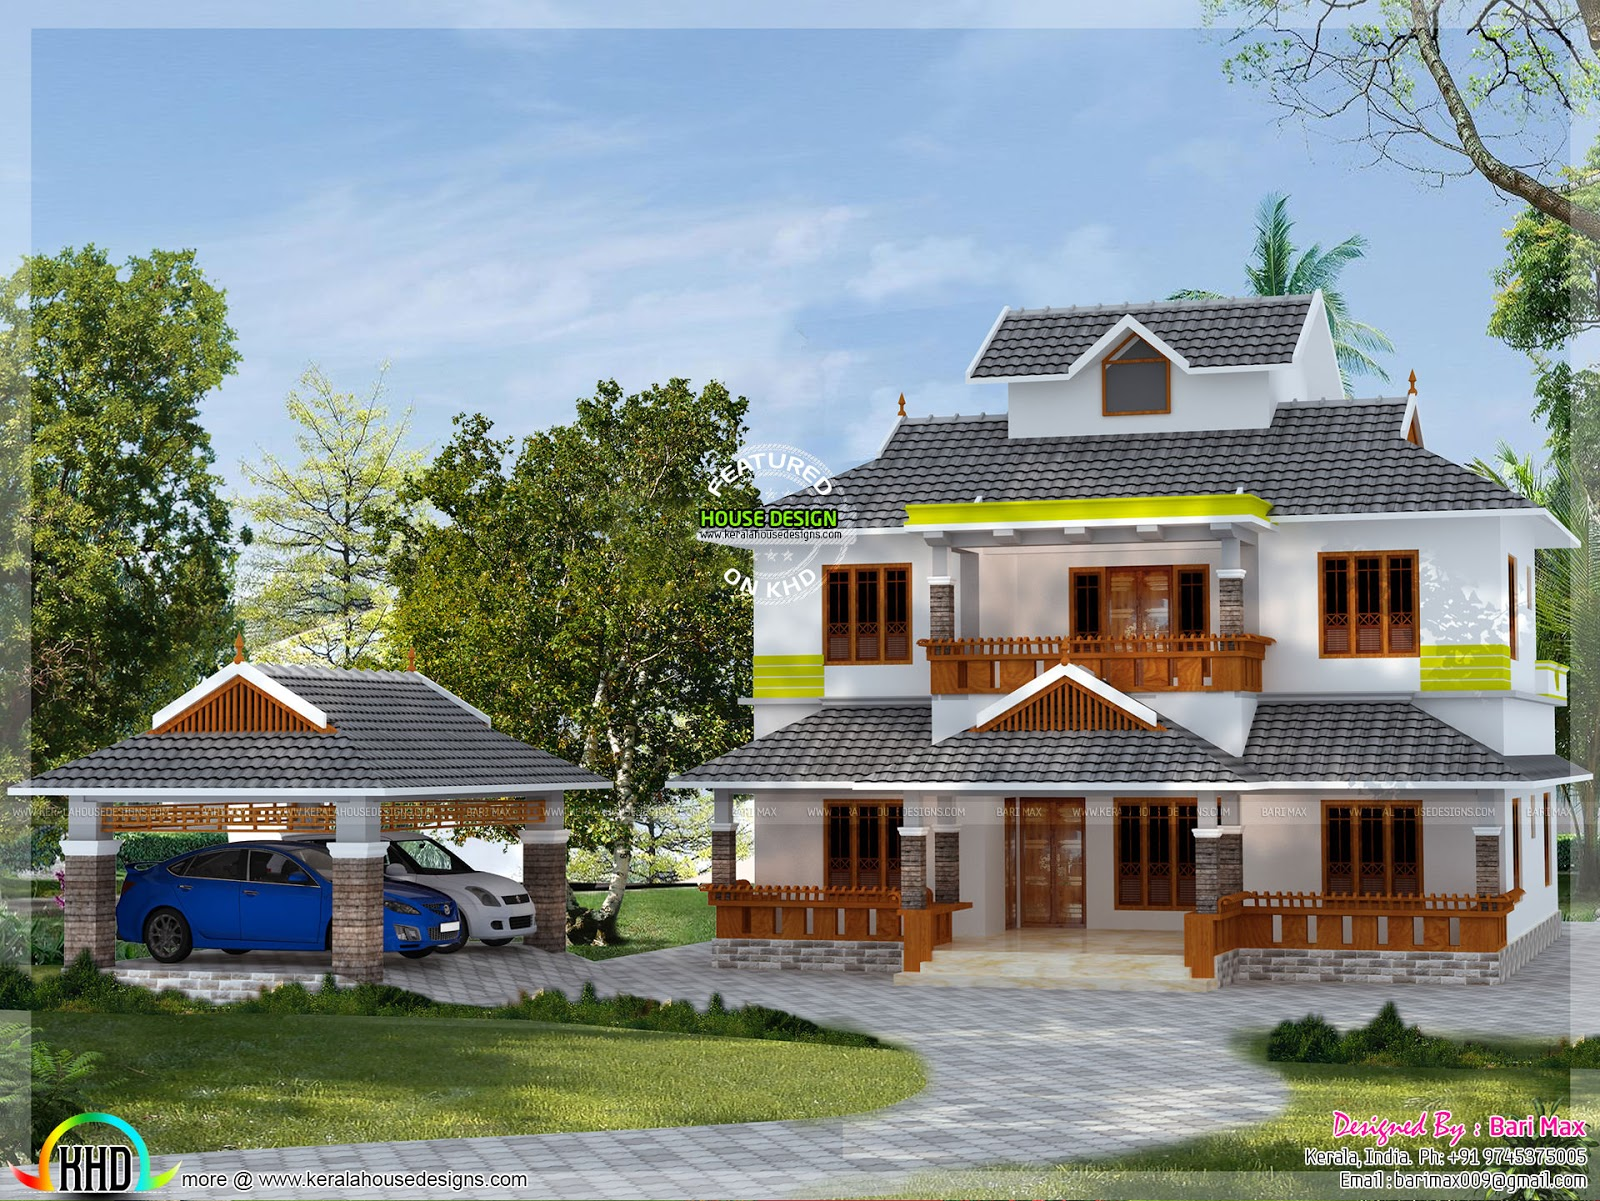 2500 sq ft slop roof home kerala home design and floor plans for 2500 sq ft house plans in kerala